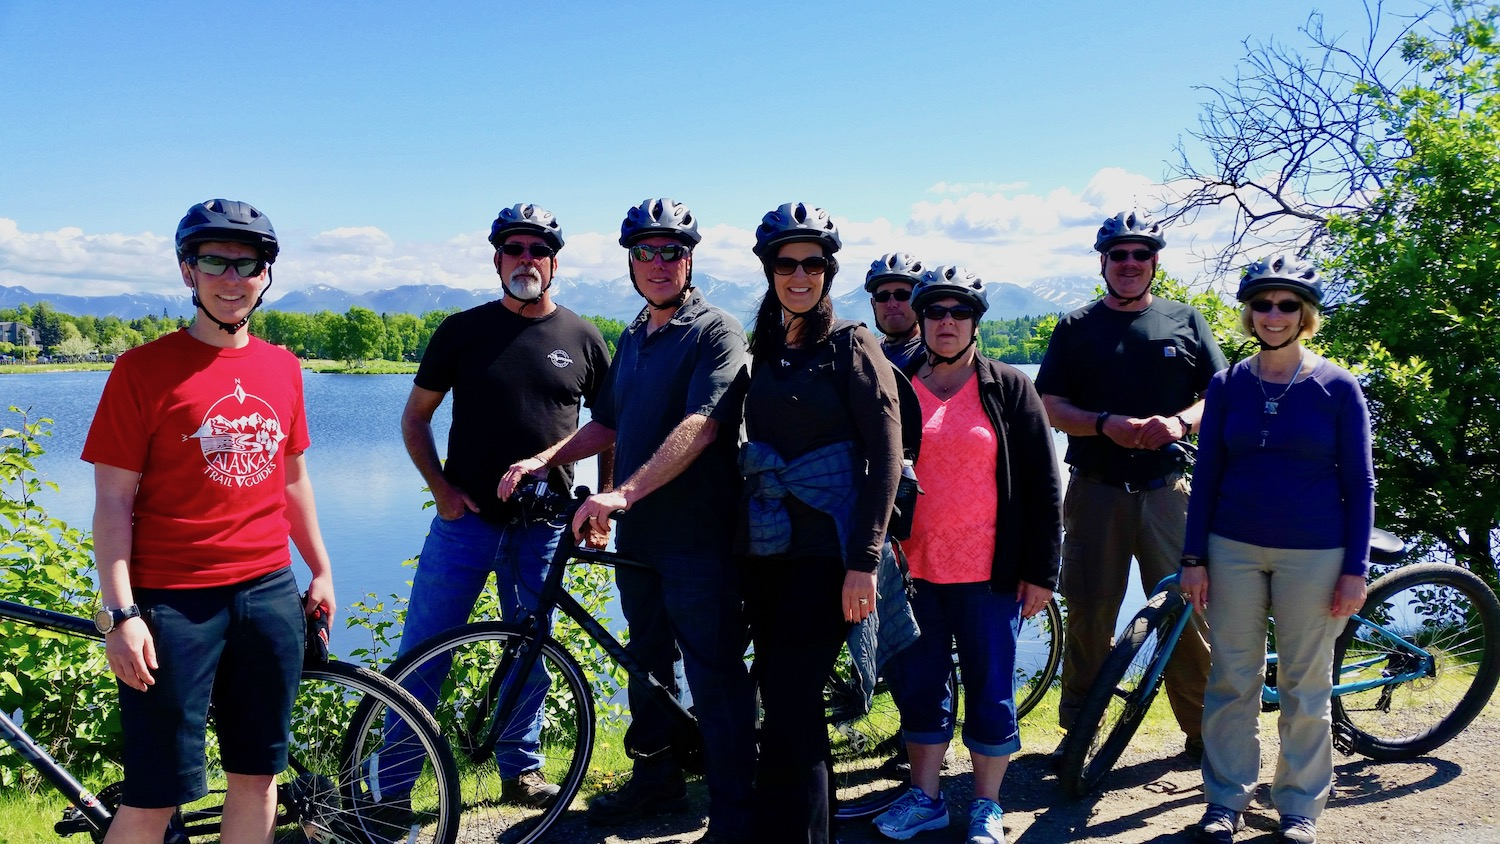 Family group at Westchester Lagoon on Tony Knowles Coastal Trail bike tour